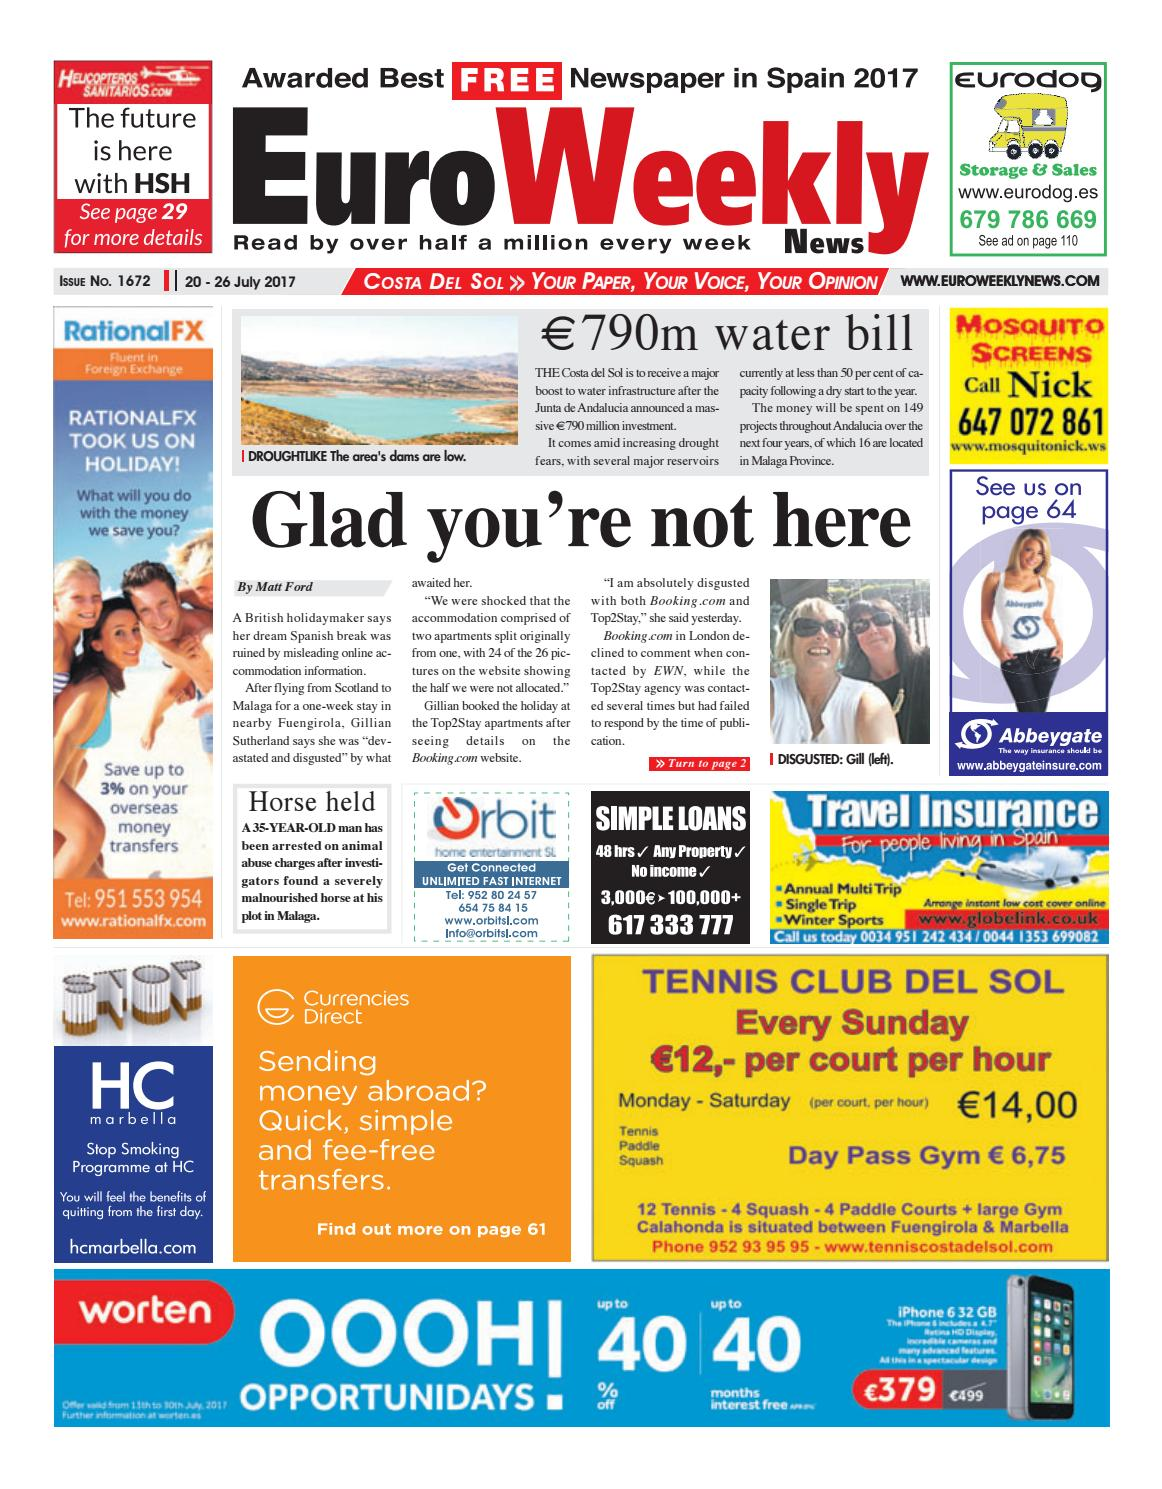 Euro Weekly News - Costa del Sol 20 – 26 July 2017 Issue 1672 by Euro  Weekly News Media S.A. - issuu